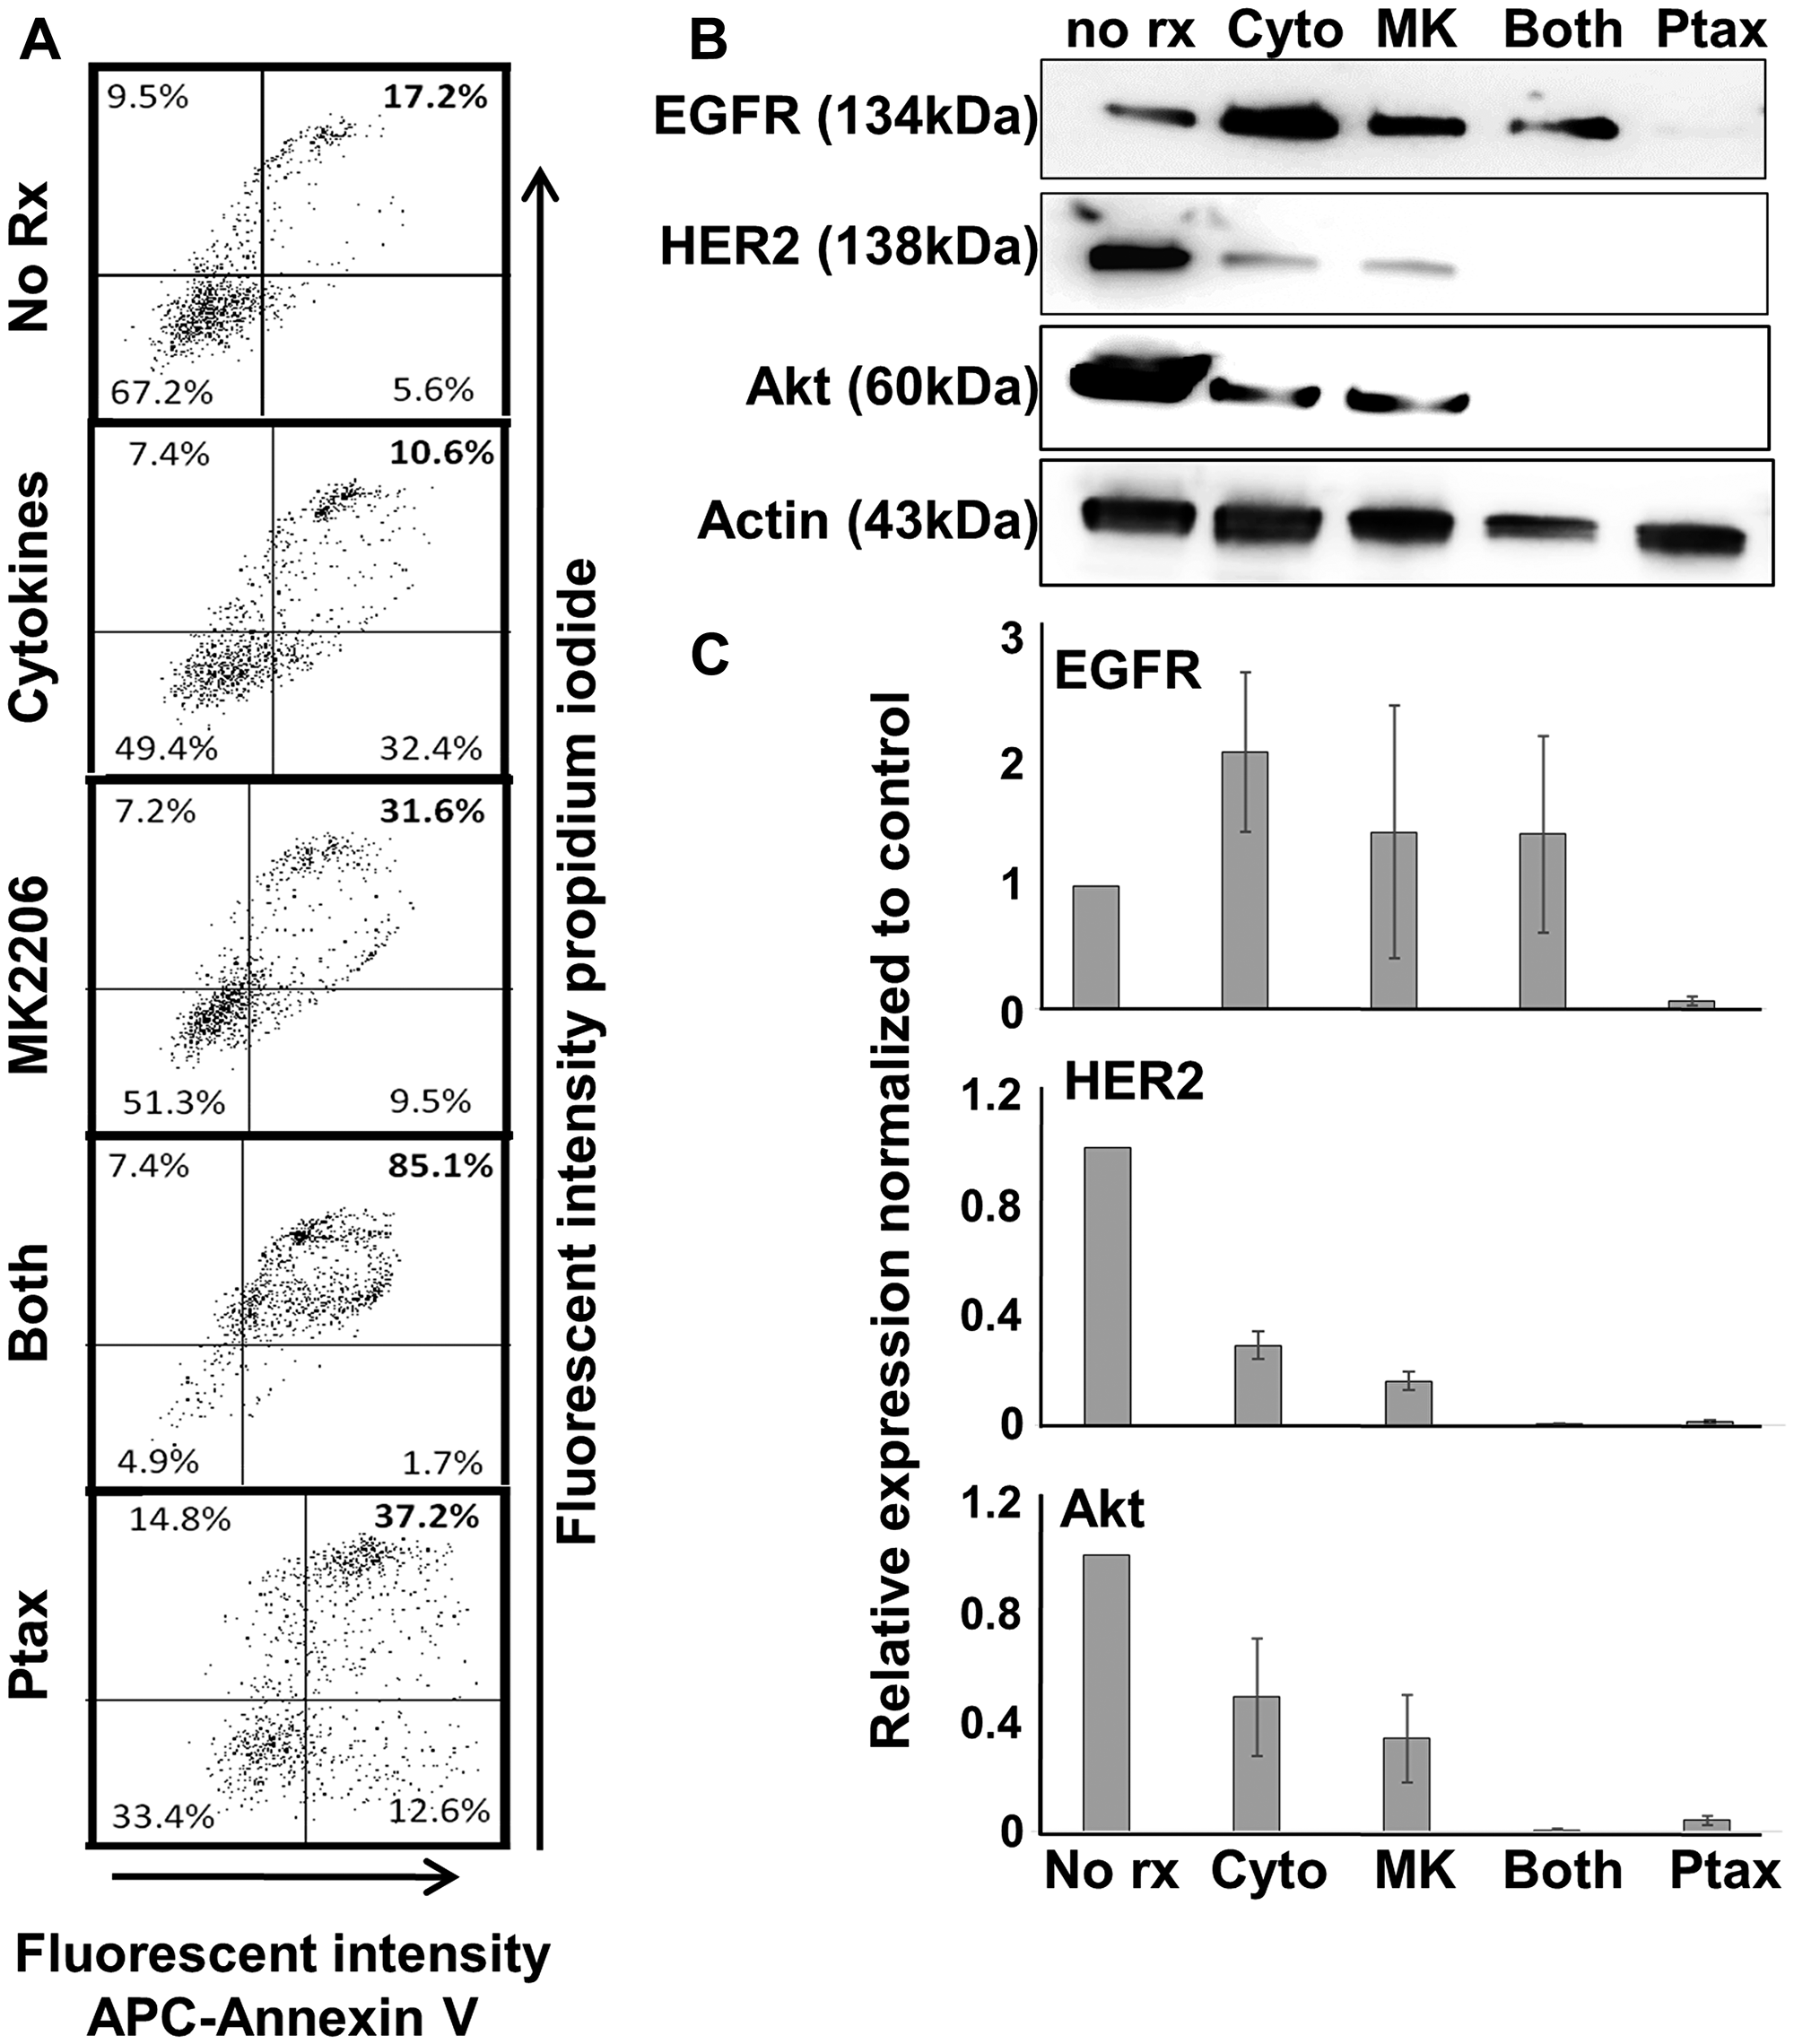 Th1 cytokines, MK-2206, and paclitaxel induce apoptosis in human breast cancer cells but differentially affect expression of oncodrivers.